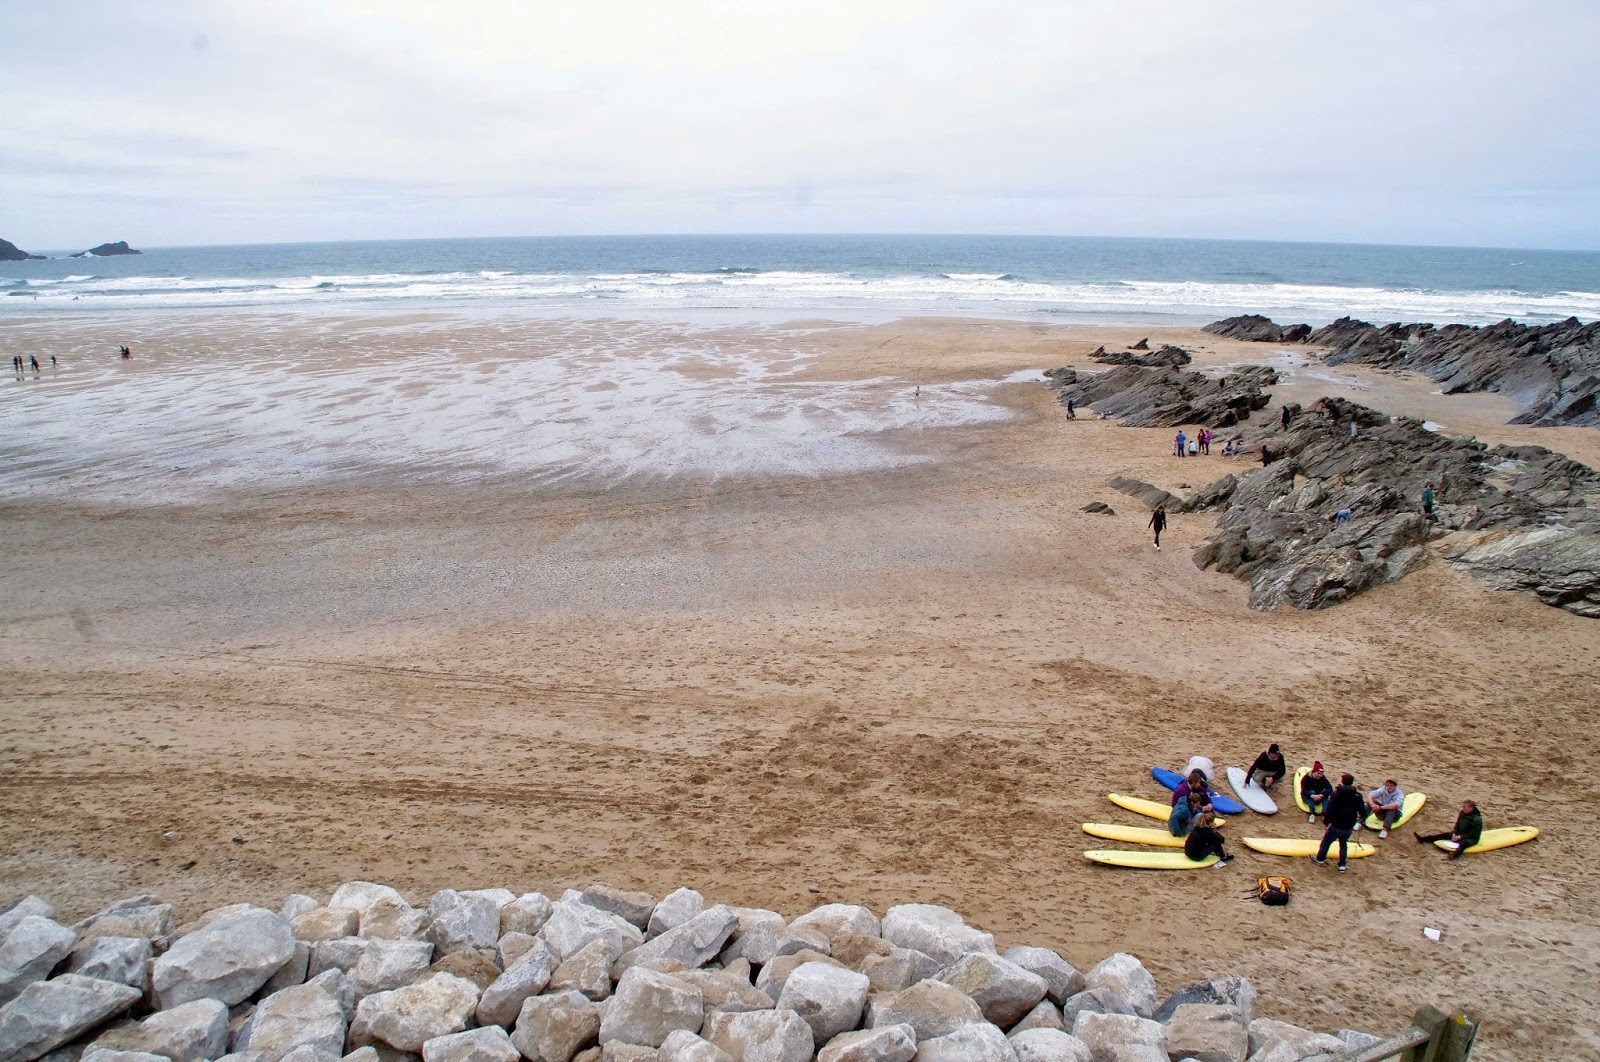 http://www.theaussieflashpacker.com/2015/04/exploring-britains-best-beaches-newquay.html